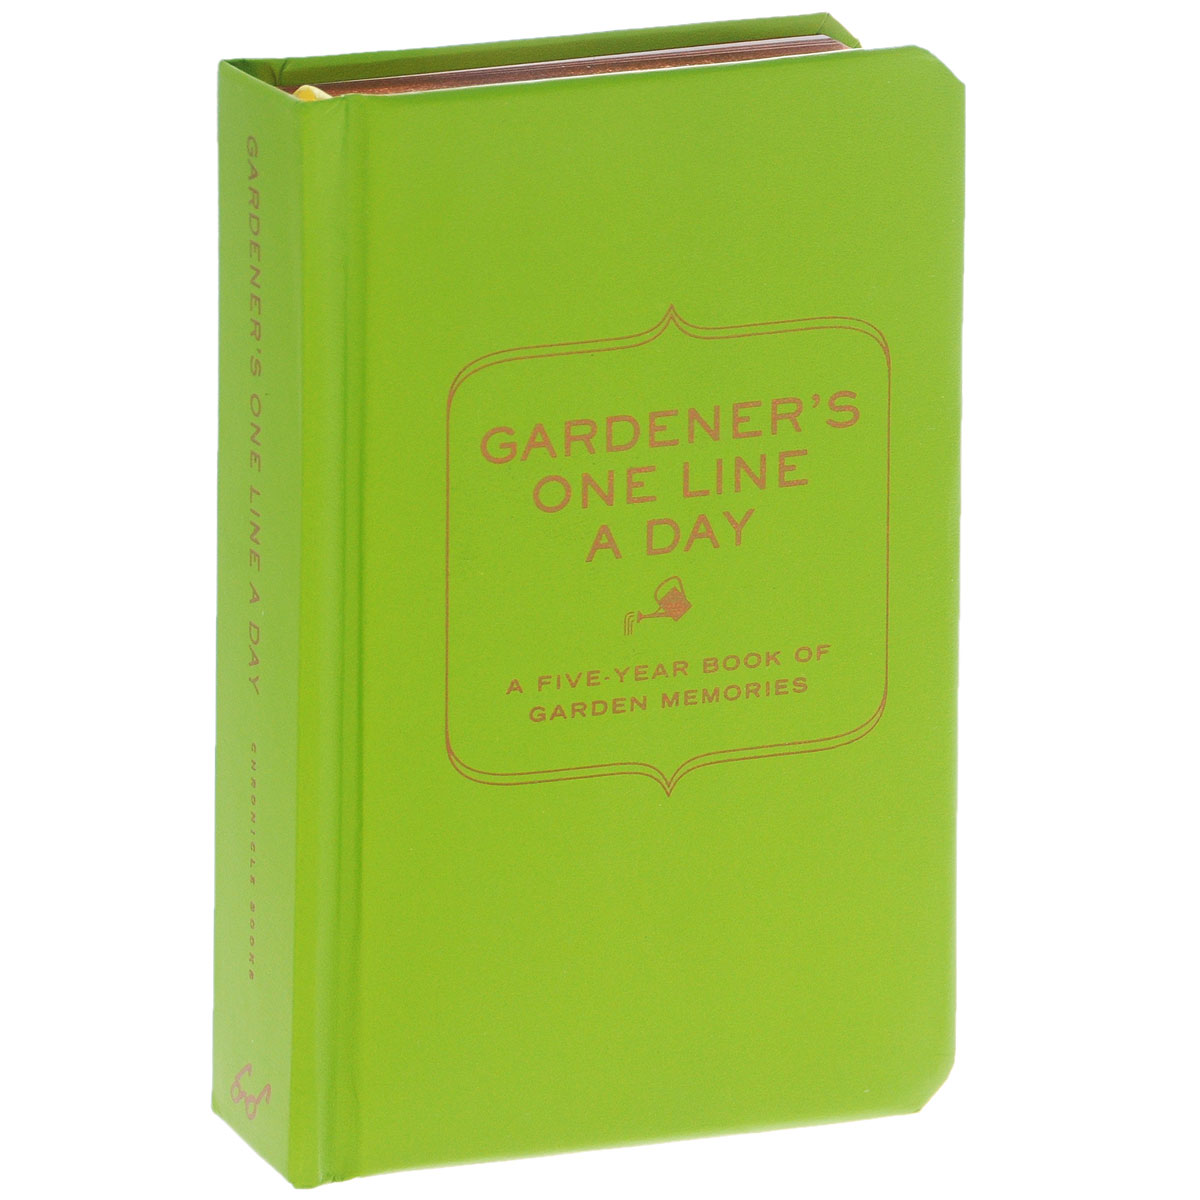 Gardener's One Line a Day: A Five-Year Book of Garden Memories history year by year